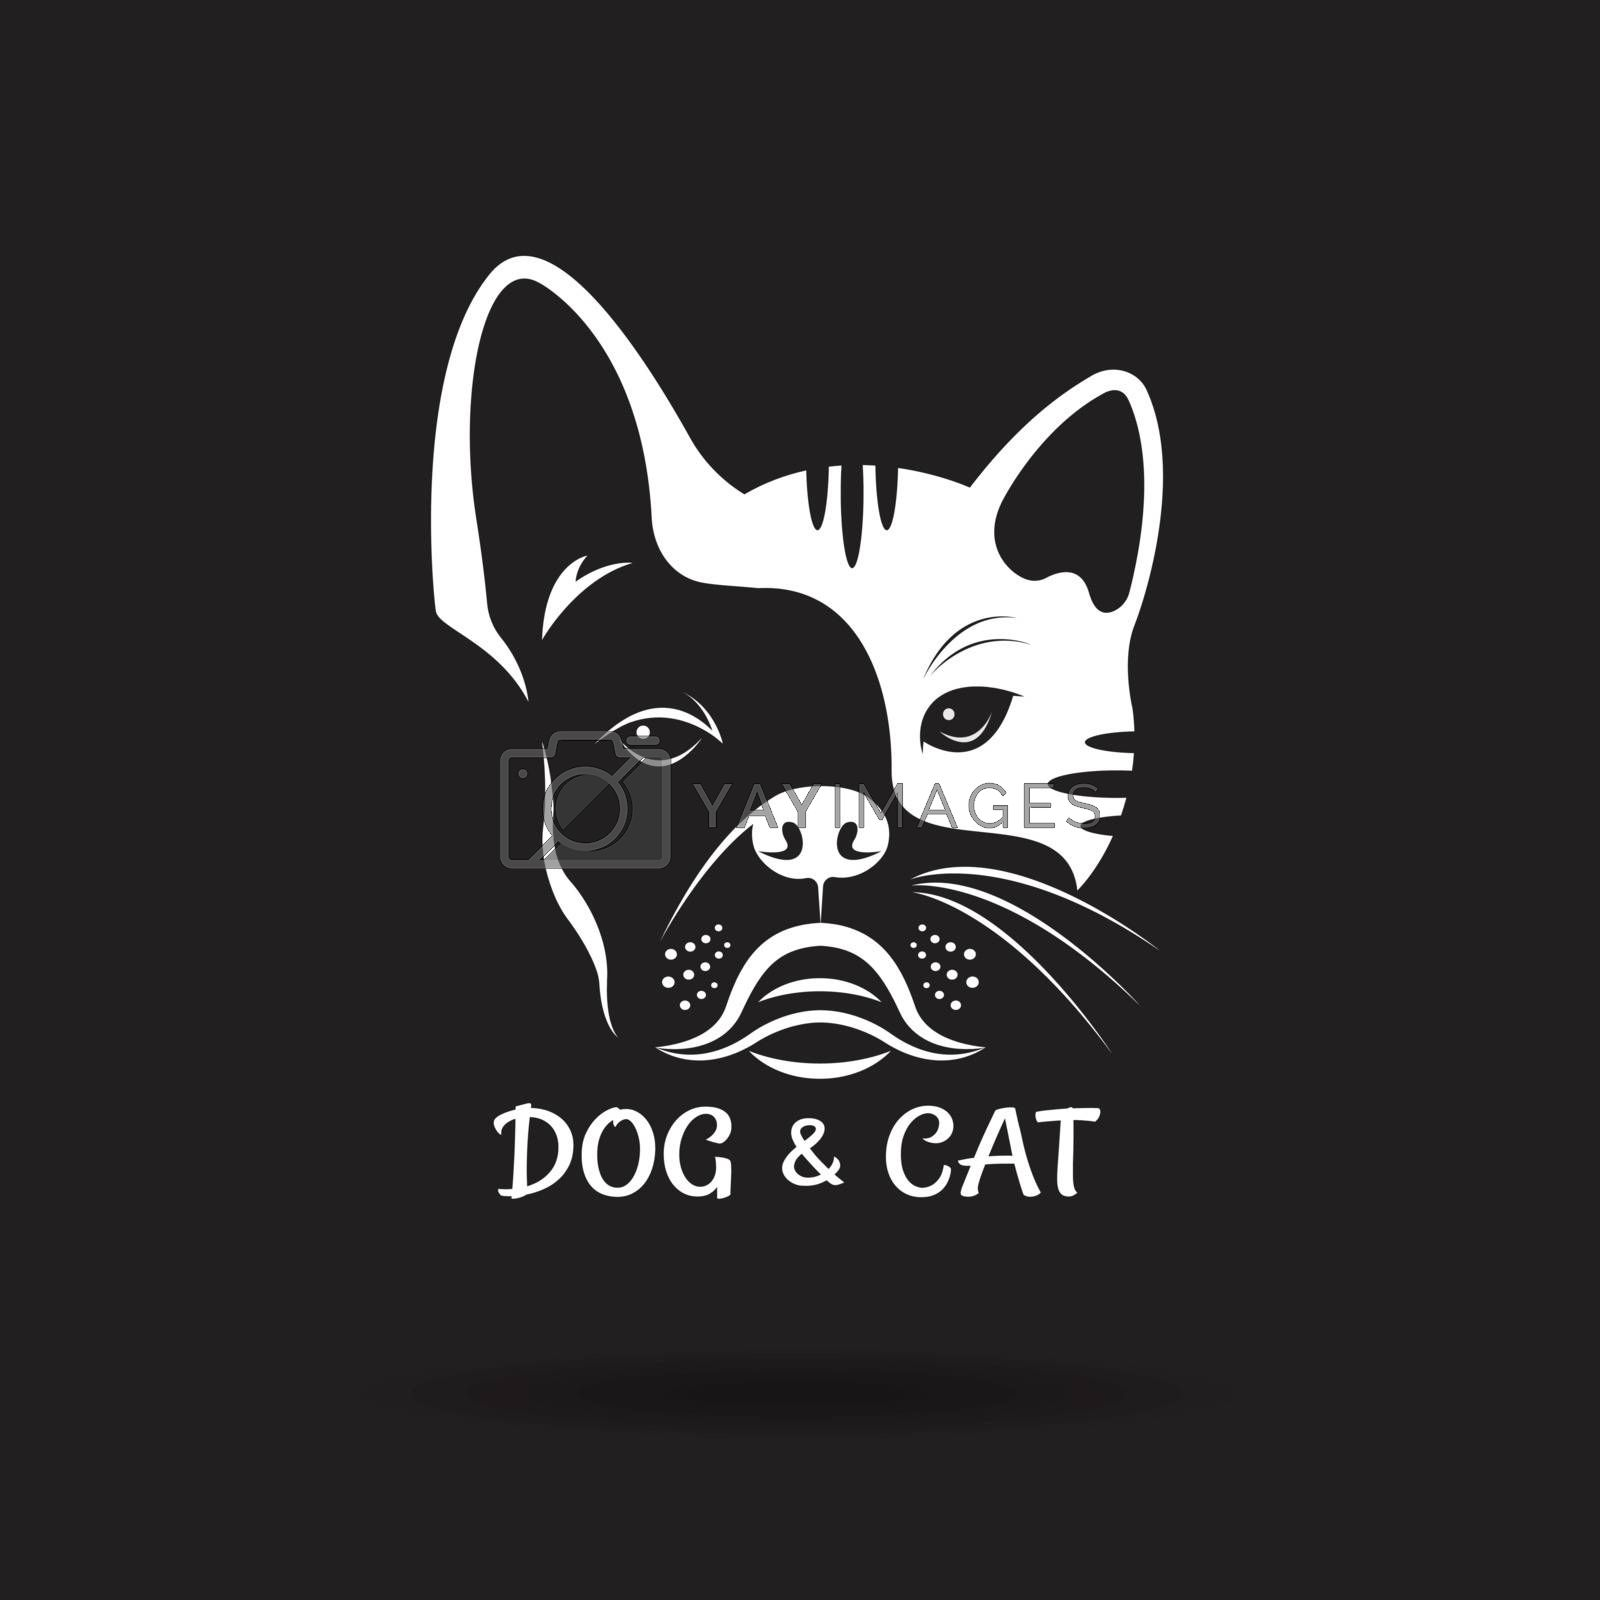 Vector of dog face (ฺbulldog) and cat face design on a black background. Pet. Animal. Dog and cat logo or icon. Easy editable layered vector illustration.